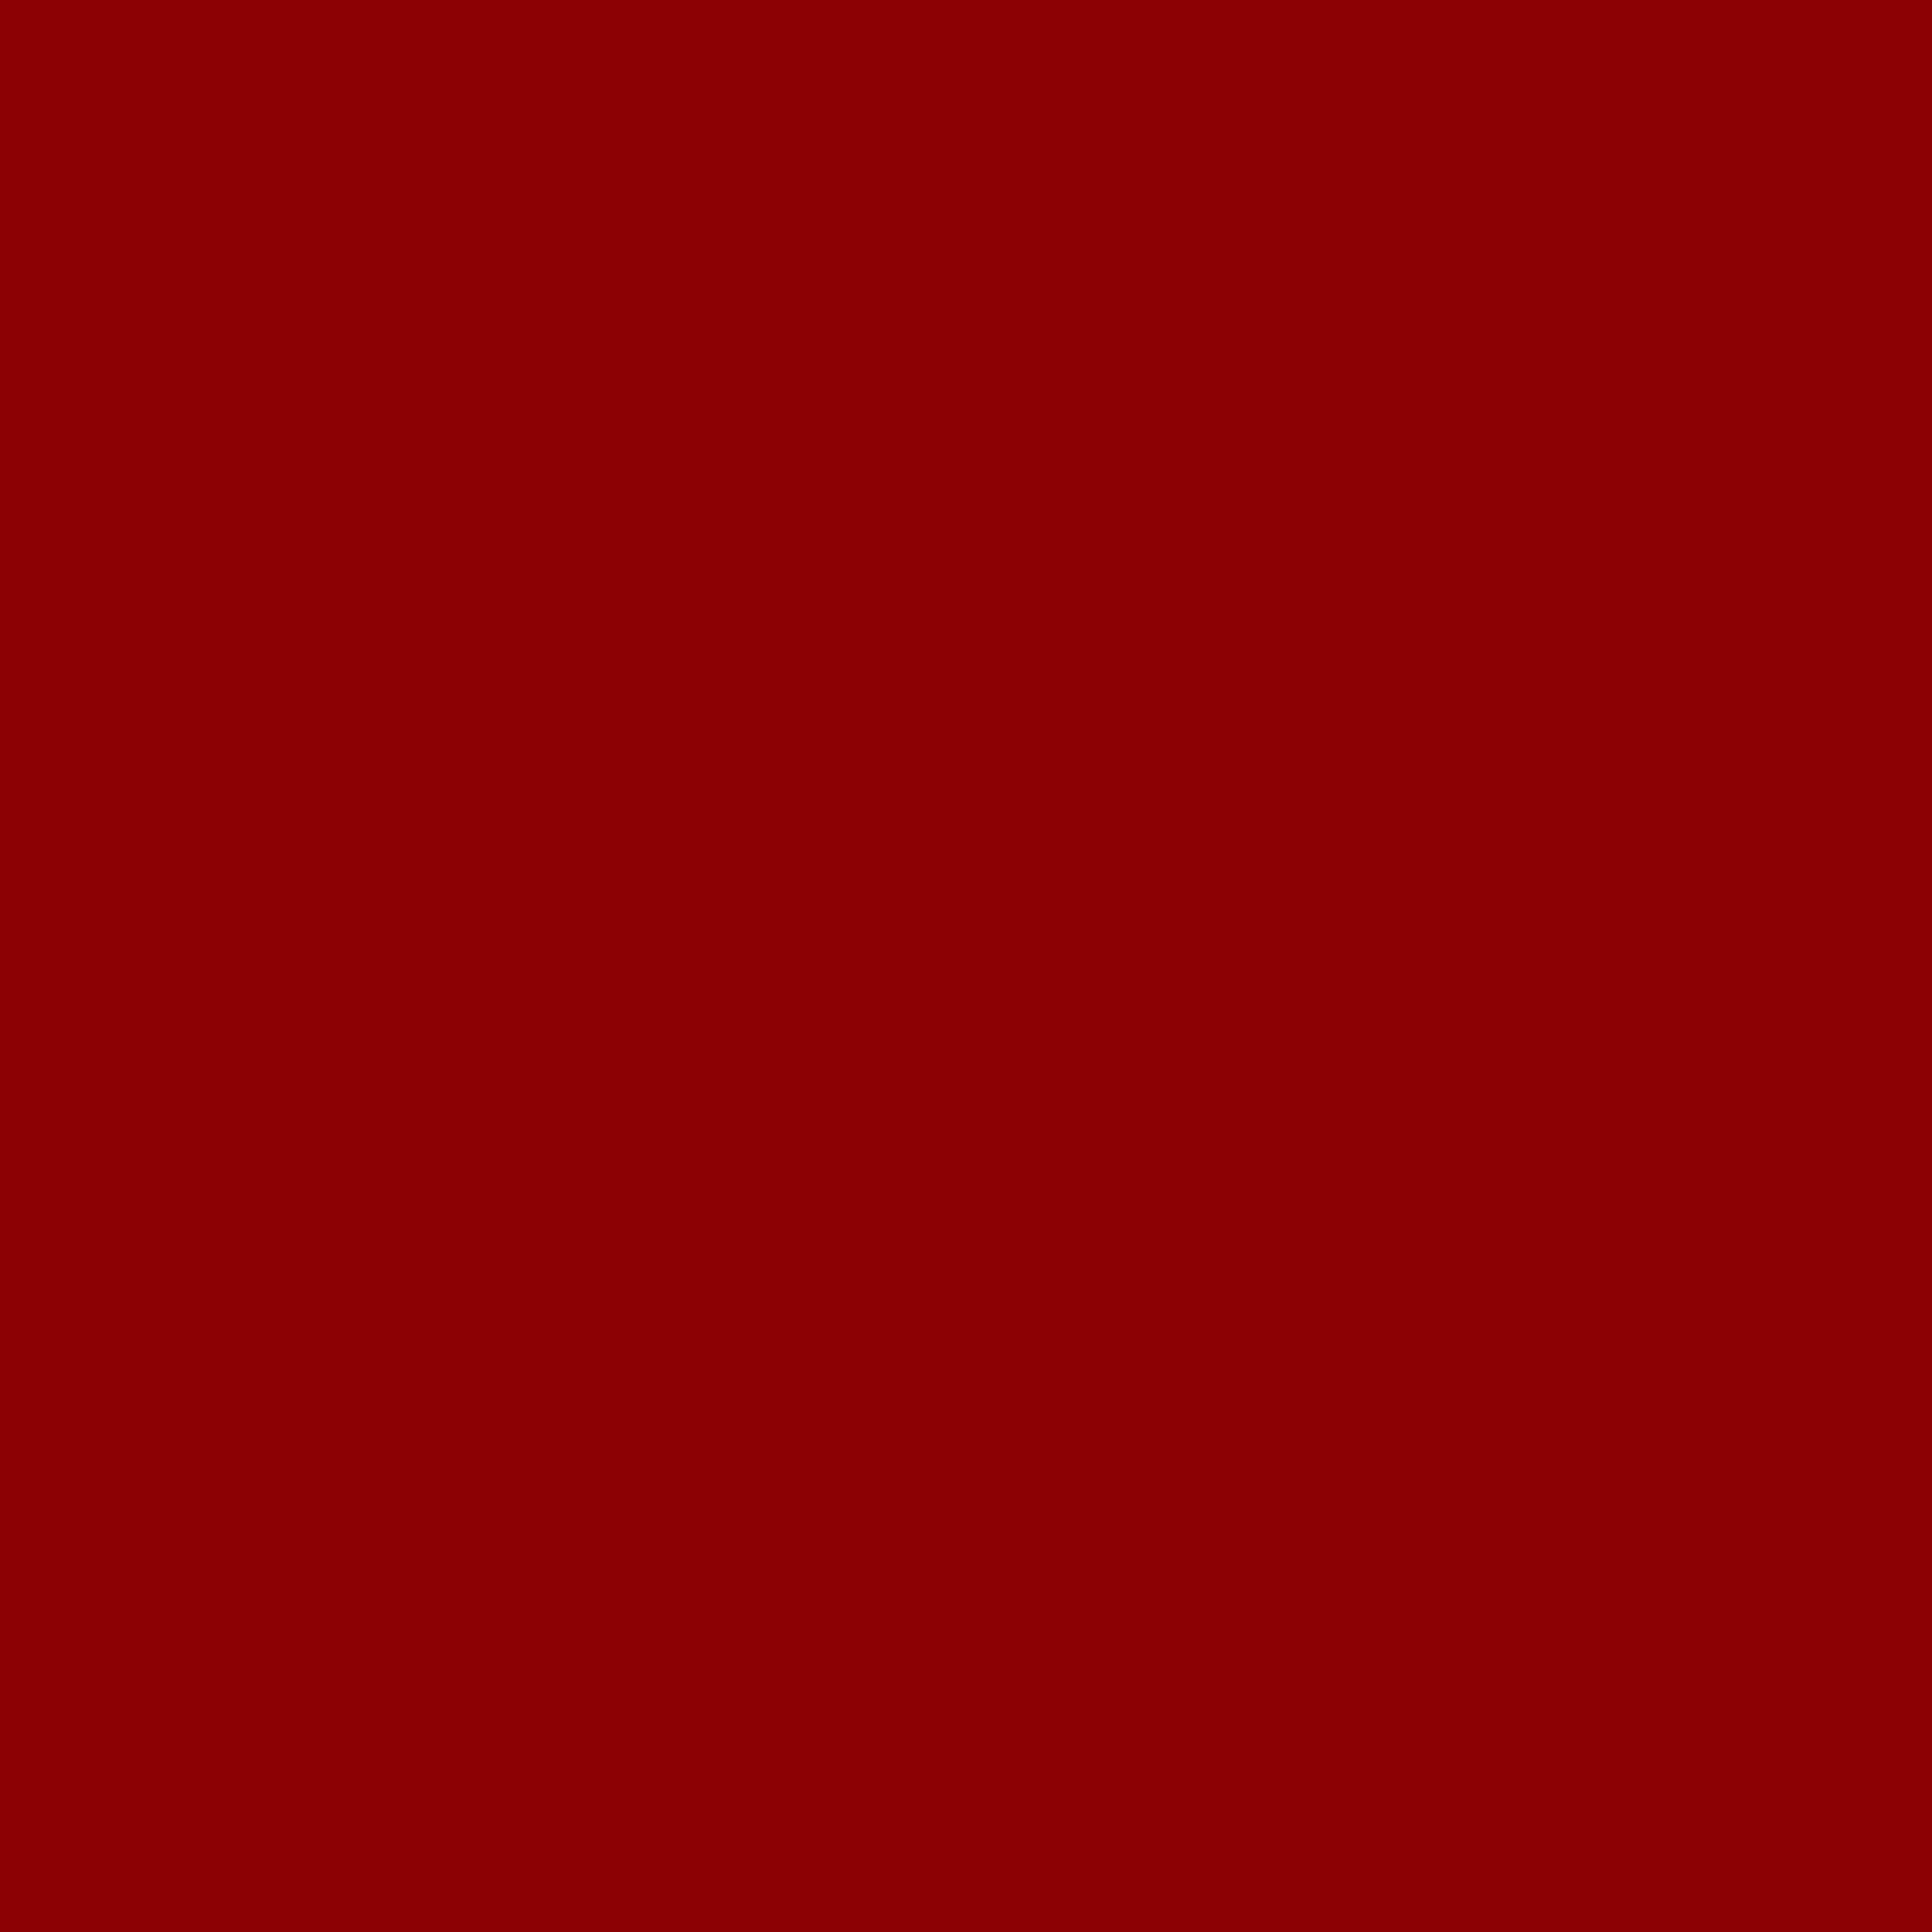 3600x3600 Dark Red Solid Color Background